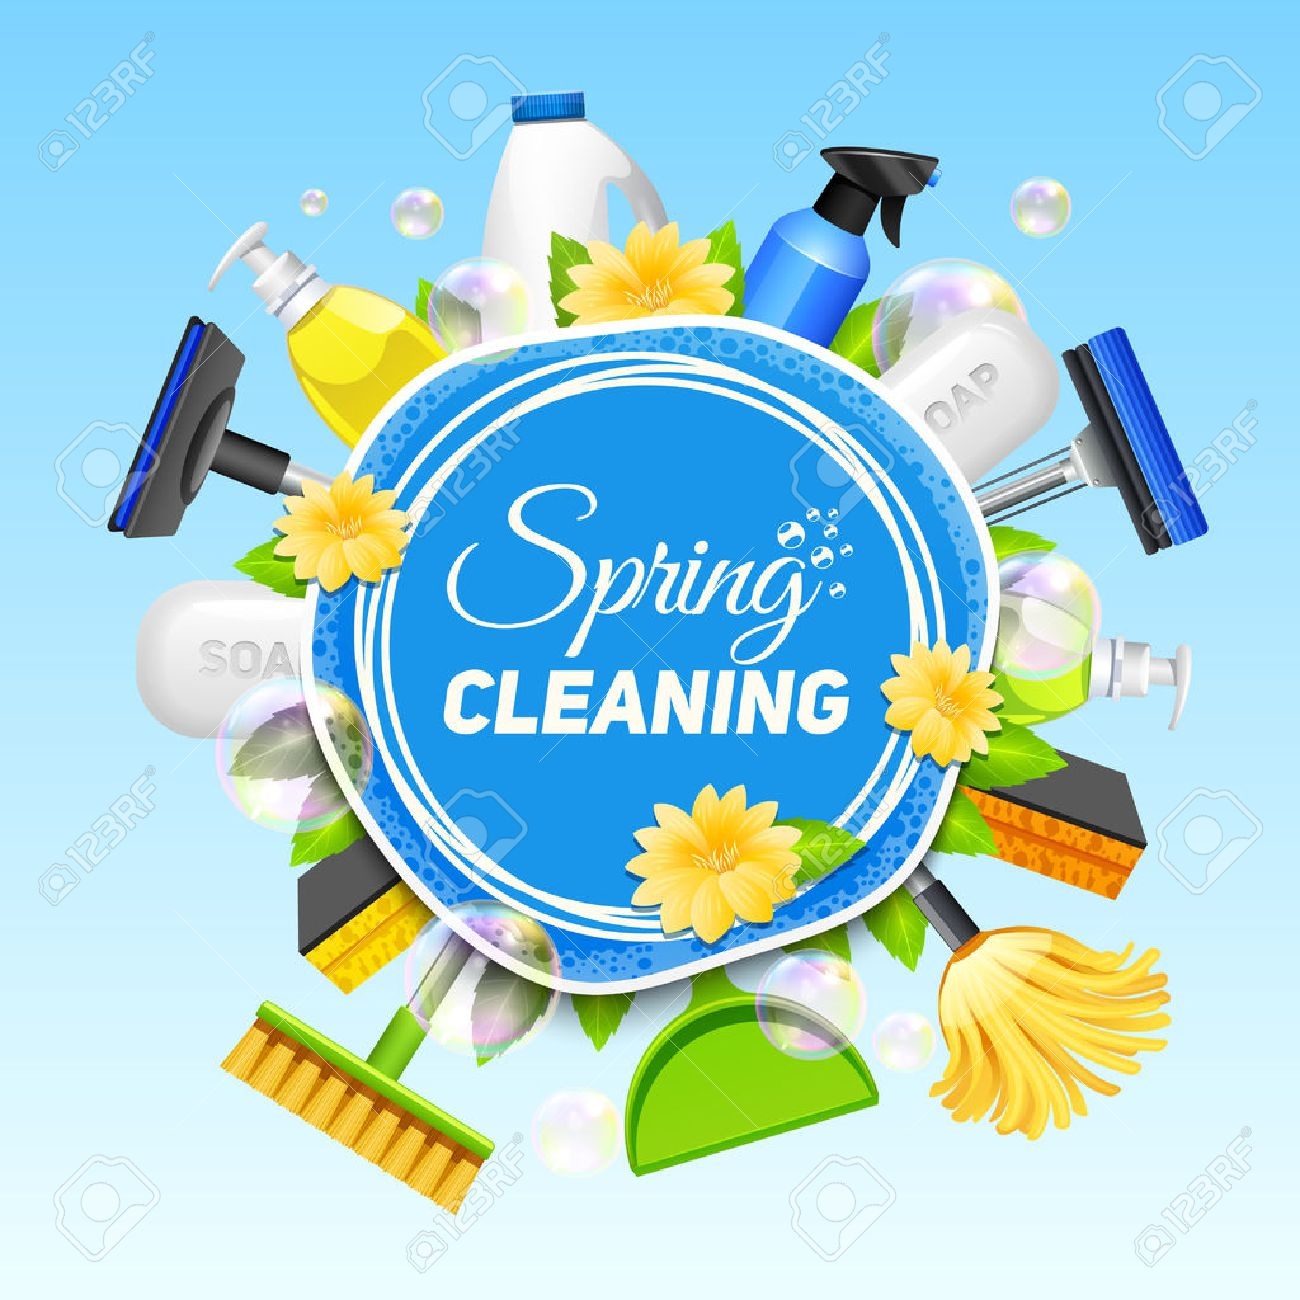 Poster with composition of different tools for cleaning service colored on blue background vector illustration Stock Vector - 53864056